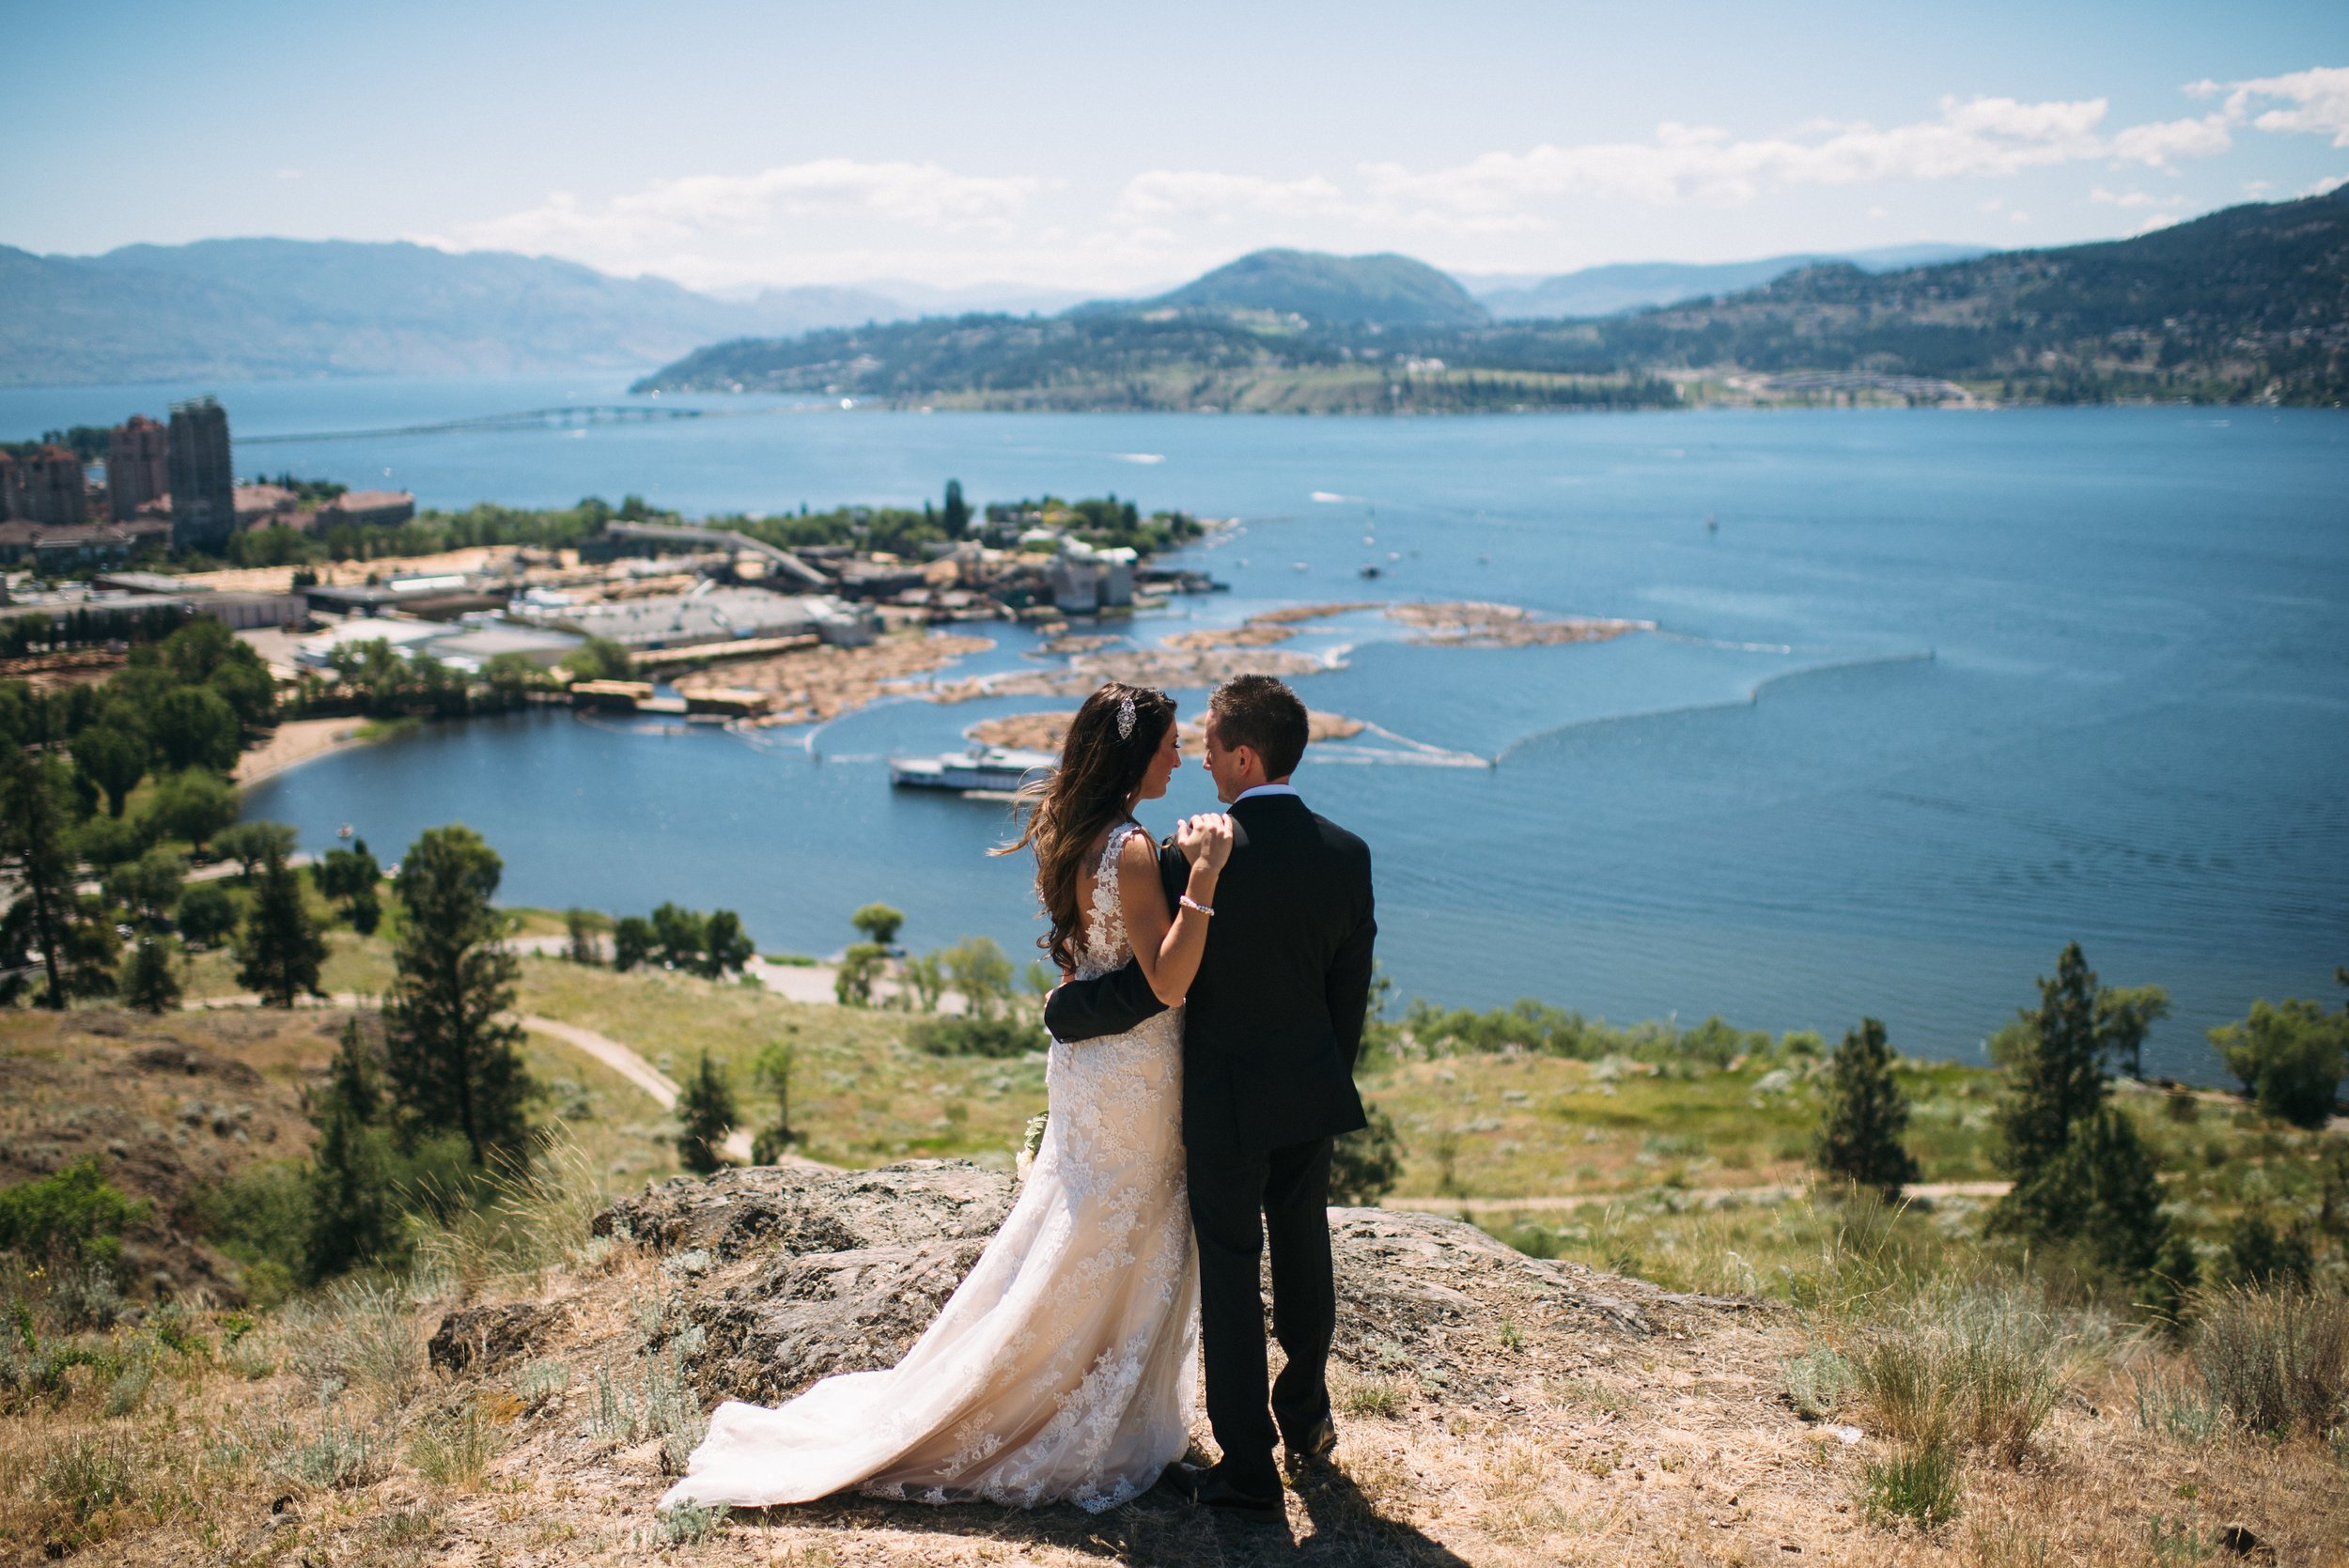 kaihla_tonai_intimate_wedding_elopement_photographer_3884